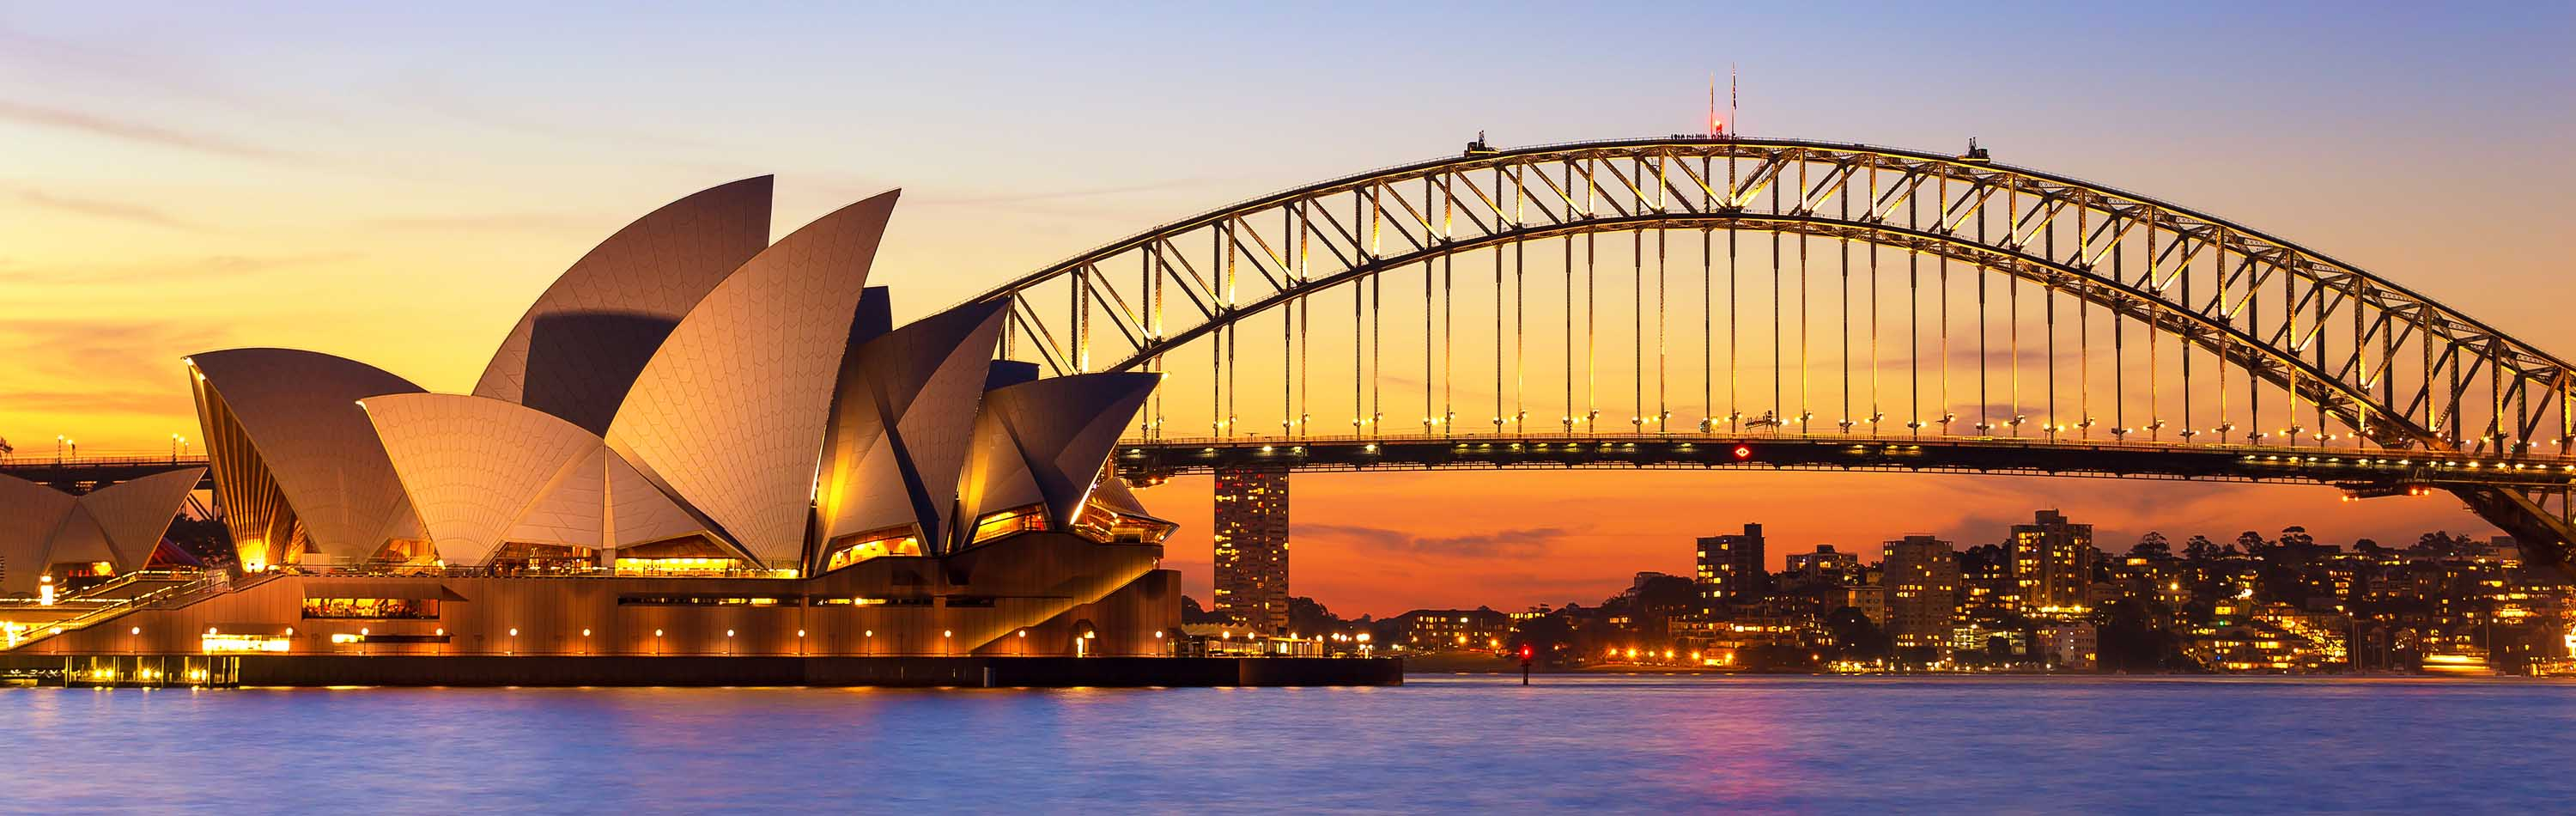 Australia Tour - Sydney Opera House and Harbour at Night